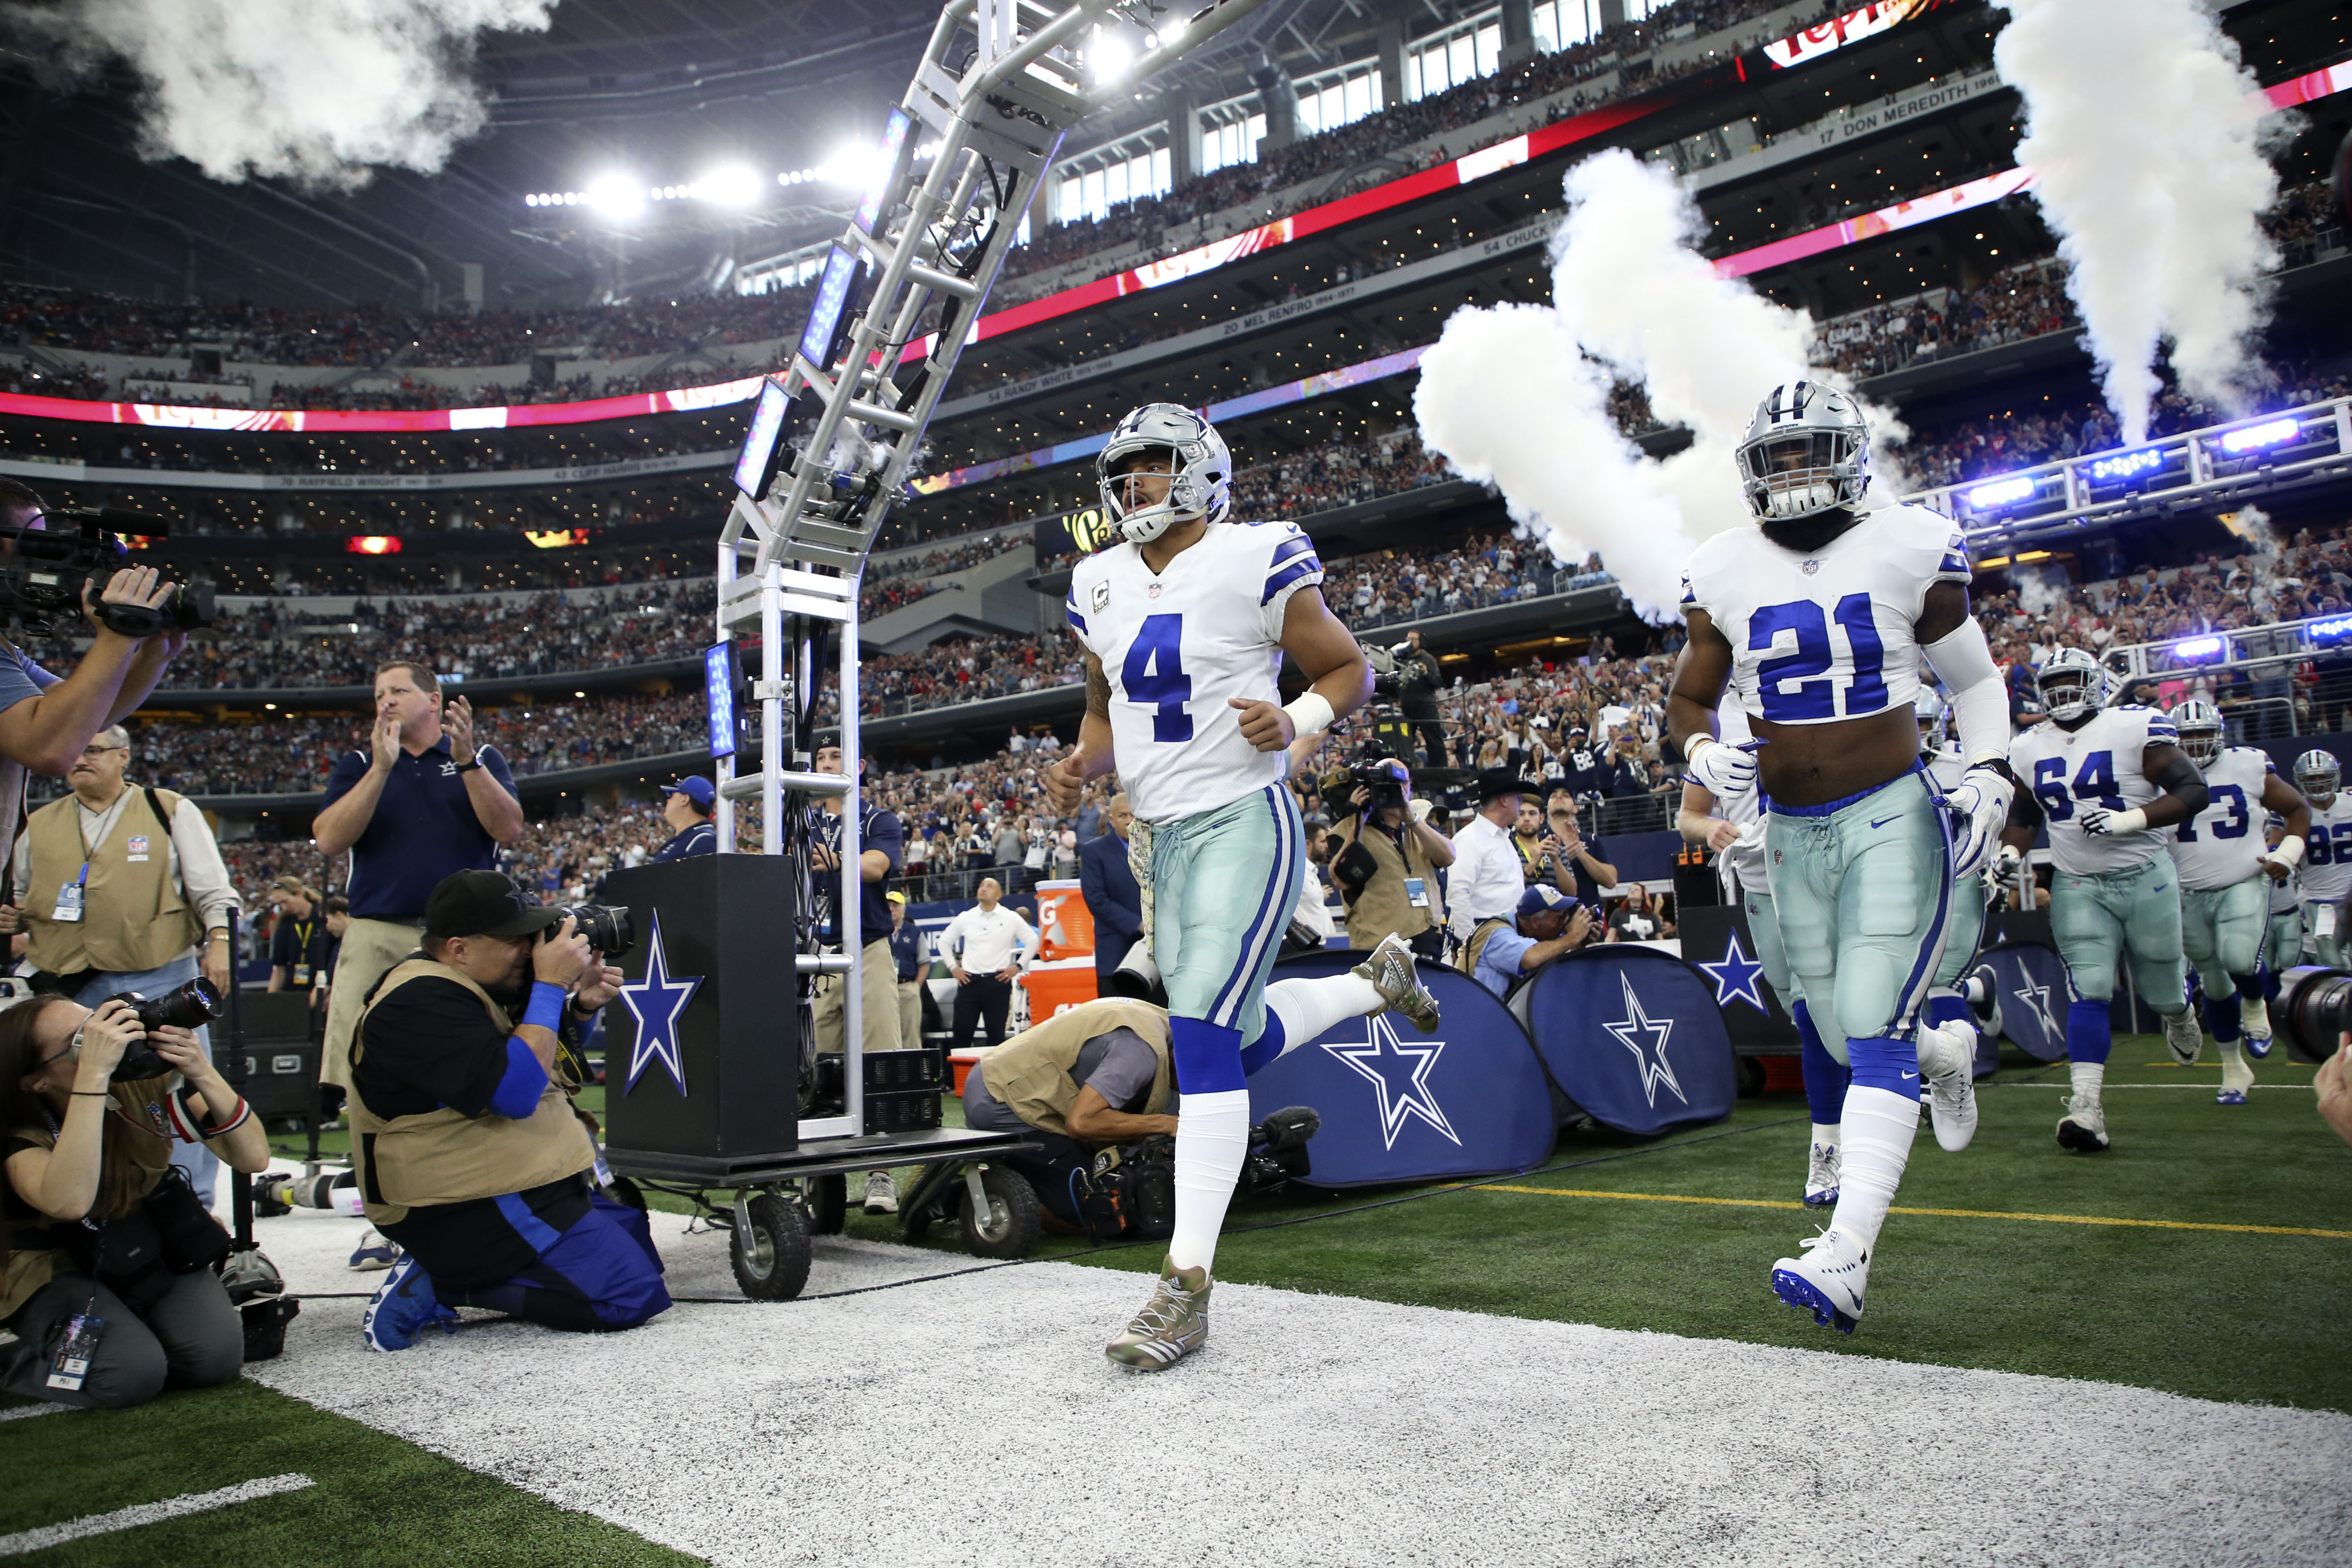 Nov 5, 2017; Arlington, TX, USA; Dallas Cowboys quarterback Dak Prescott (4) and running back Ezekiel Elliott (21) run onto the field before the game against the Kansas City Chiefs at AT&T Stadium. Mandatory Credit: Kevin Jairaj-USA TODAY Sports